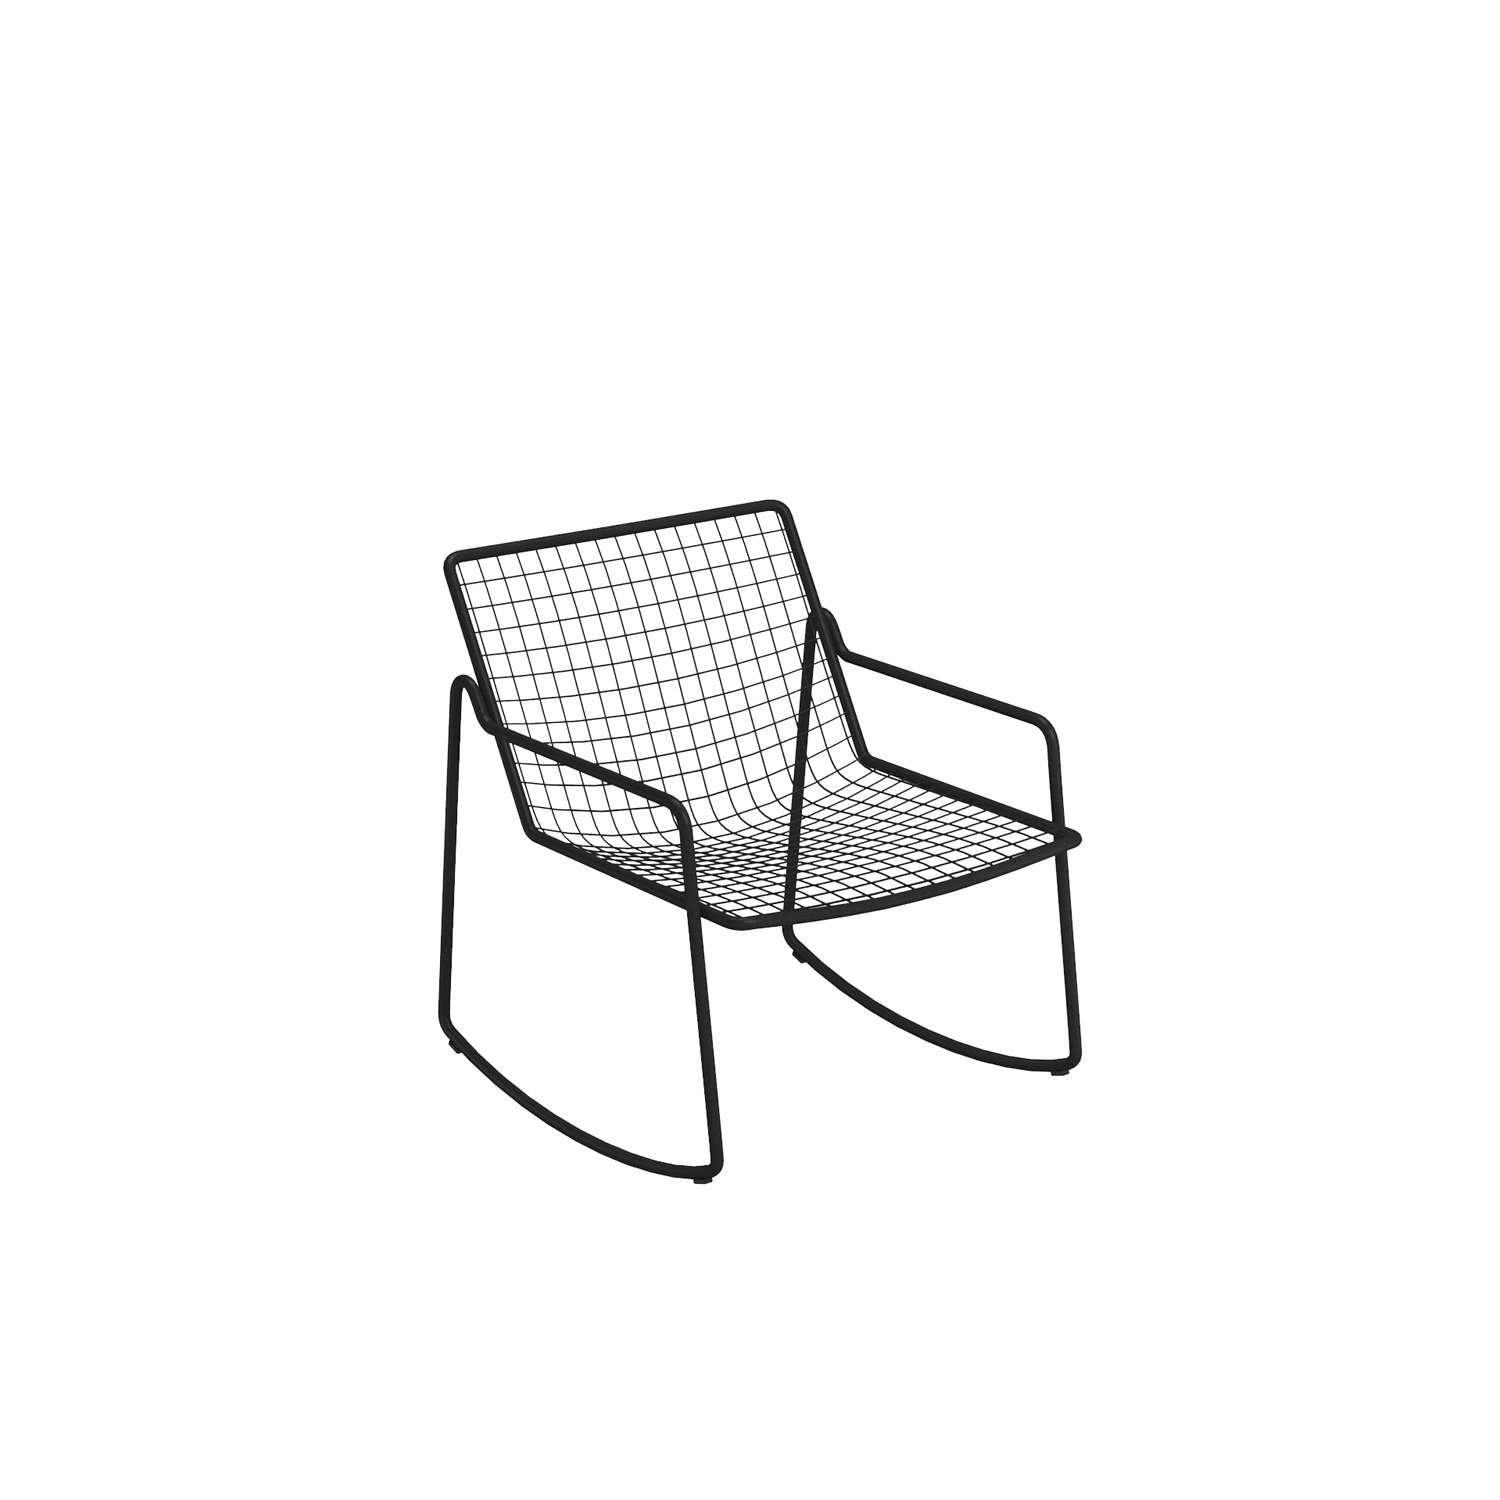 Rio R50 Swing Lounge Chair - <p>RIO R50 is an expertly crafted re-edition of the historic model Rio of the 70s. RIO R50 has a frame in ASFORM steel tube, high-quality steel with high mechanical performance and high resistance to weight. </p> <p>The manufacturing process creates a strongly characterized sign, a letter R, which is identified in the junction between seat and backrest. All structural weldings are made with Mig technology which gives great resistance to stress and rust risk; meanwhile the net, composed by steel wires, is electro-welded to the frame for a more precise aesthetics. </p> <p>Like all EMU products, a cataphoresis pretreatment is provided and then a thermosetting powder coating treatment, which finally produces a layer of homogeneous paint in terms of thickness with a high level of adherence and resistance. Nylon feet supports make it easy to move and protect the product.</p> <p>RIO R50 is a complete seats collection composed by dining chair and armchair, lounge armchair, swing armchair, stool and coffee table.</p>  | Matter of Stuff